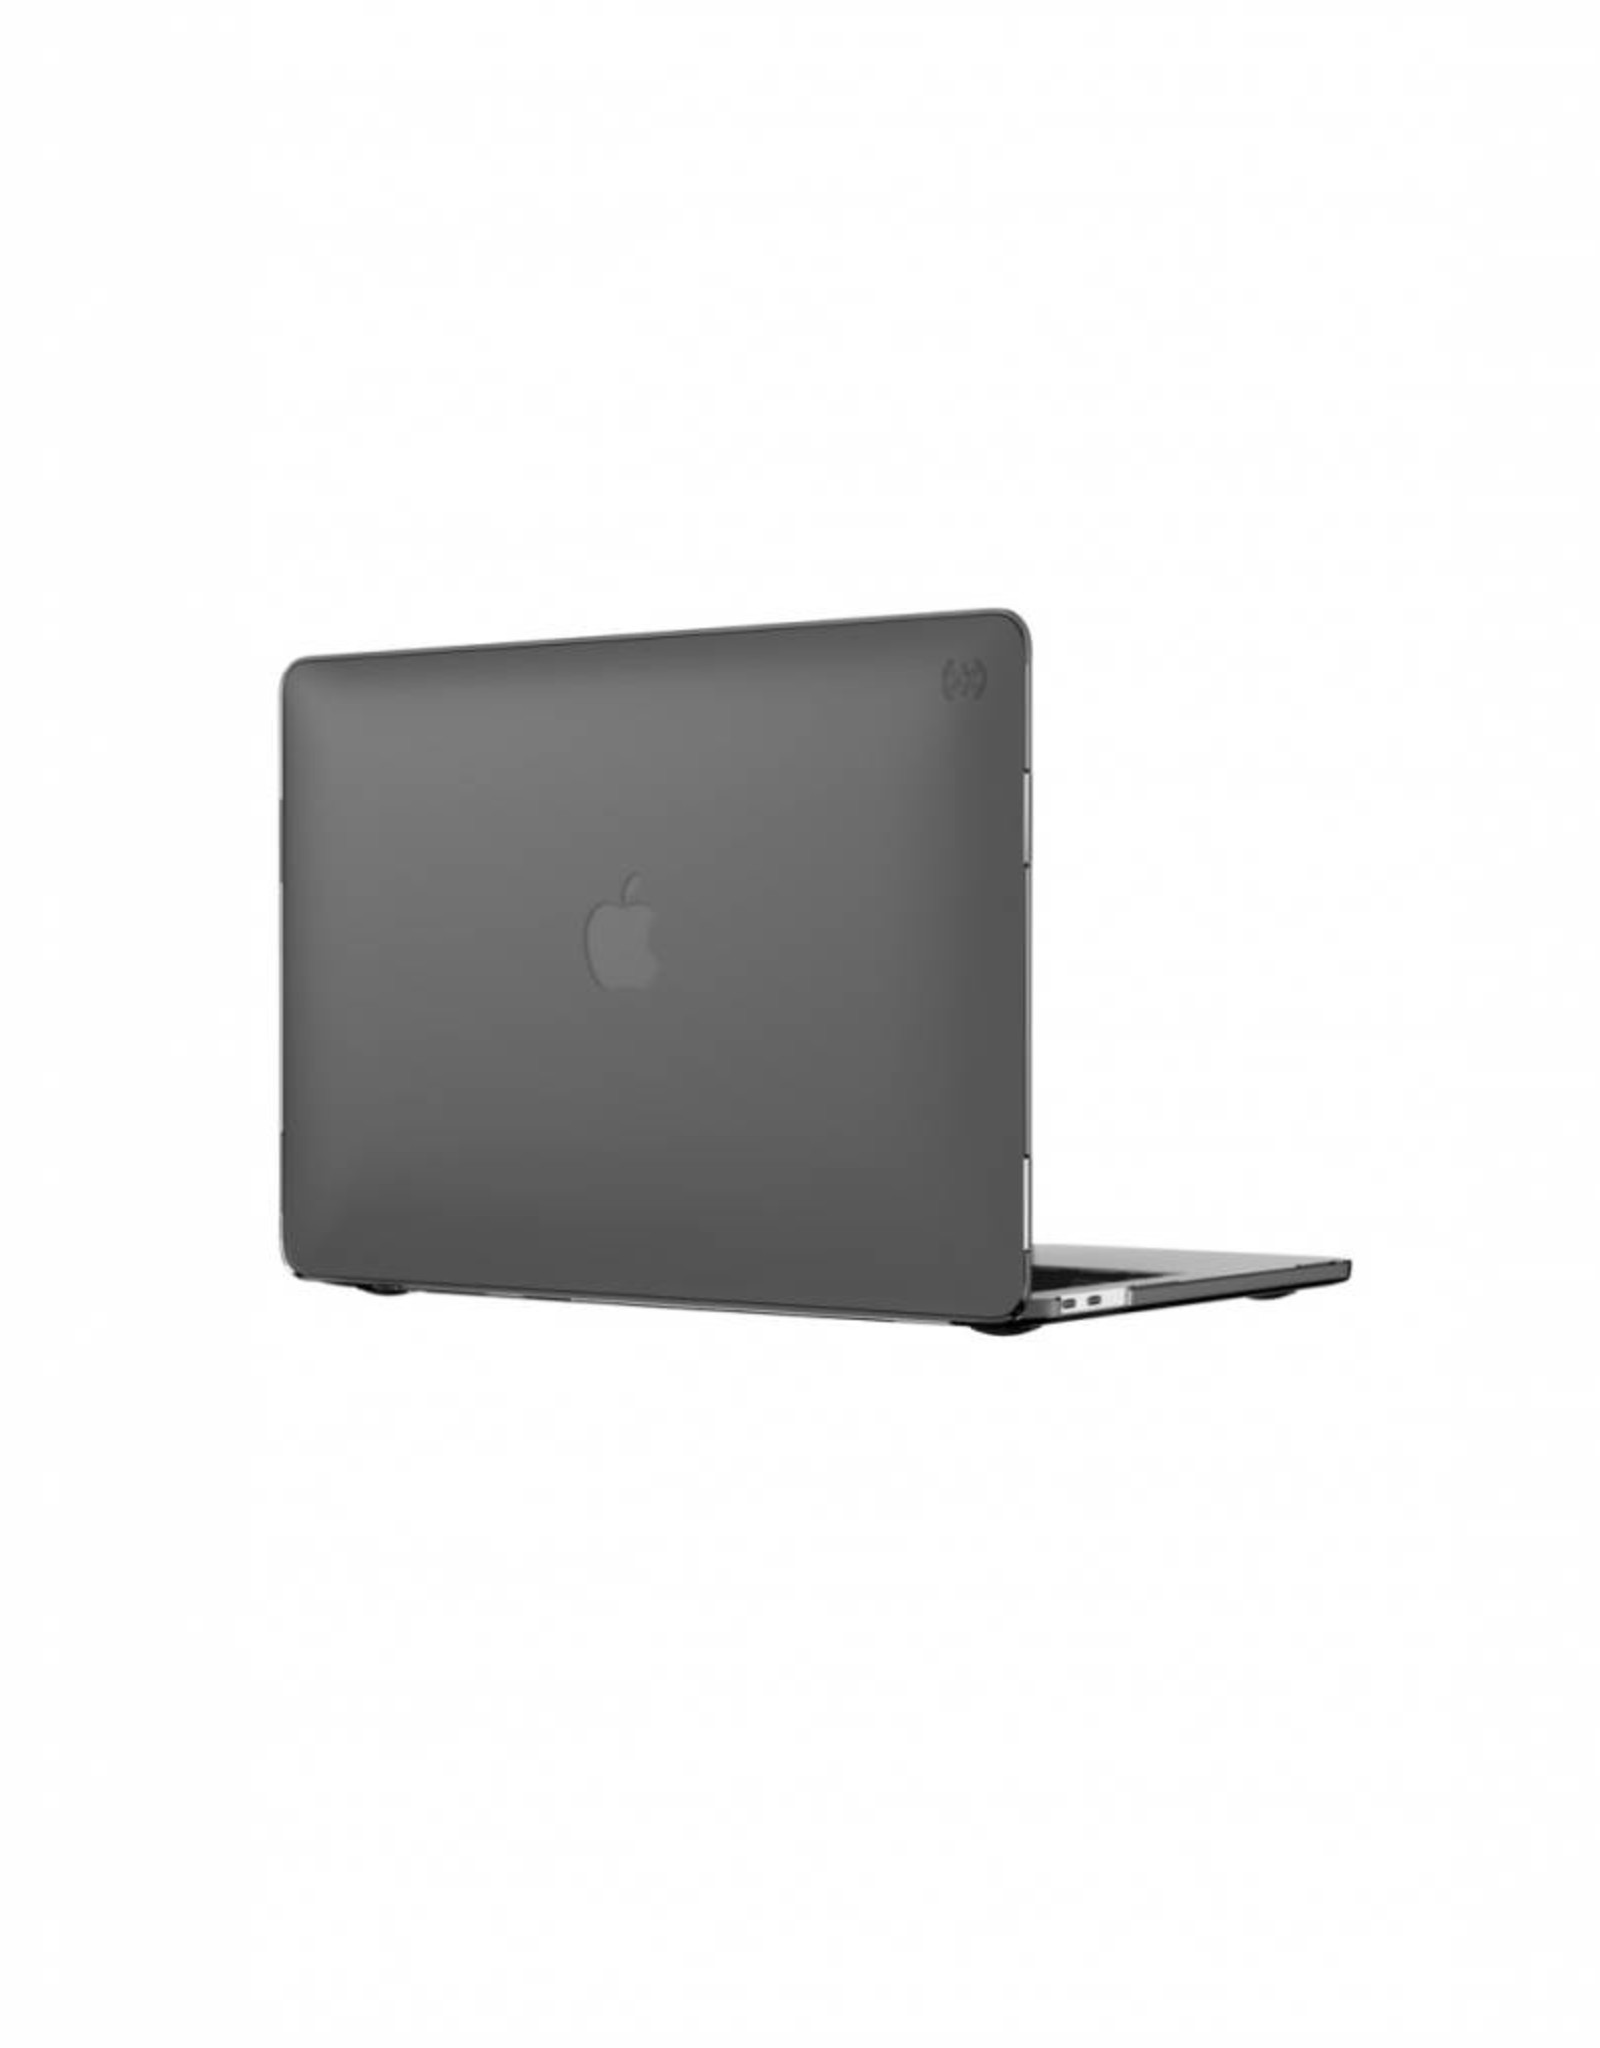 "SPECK SPECK SMARTSHELL FOR 15"" MACBOOK PRO WITH TOUCH BAR"